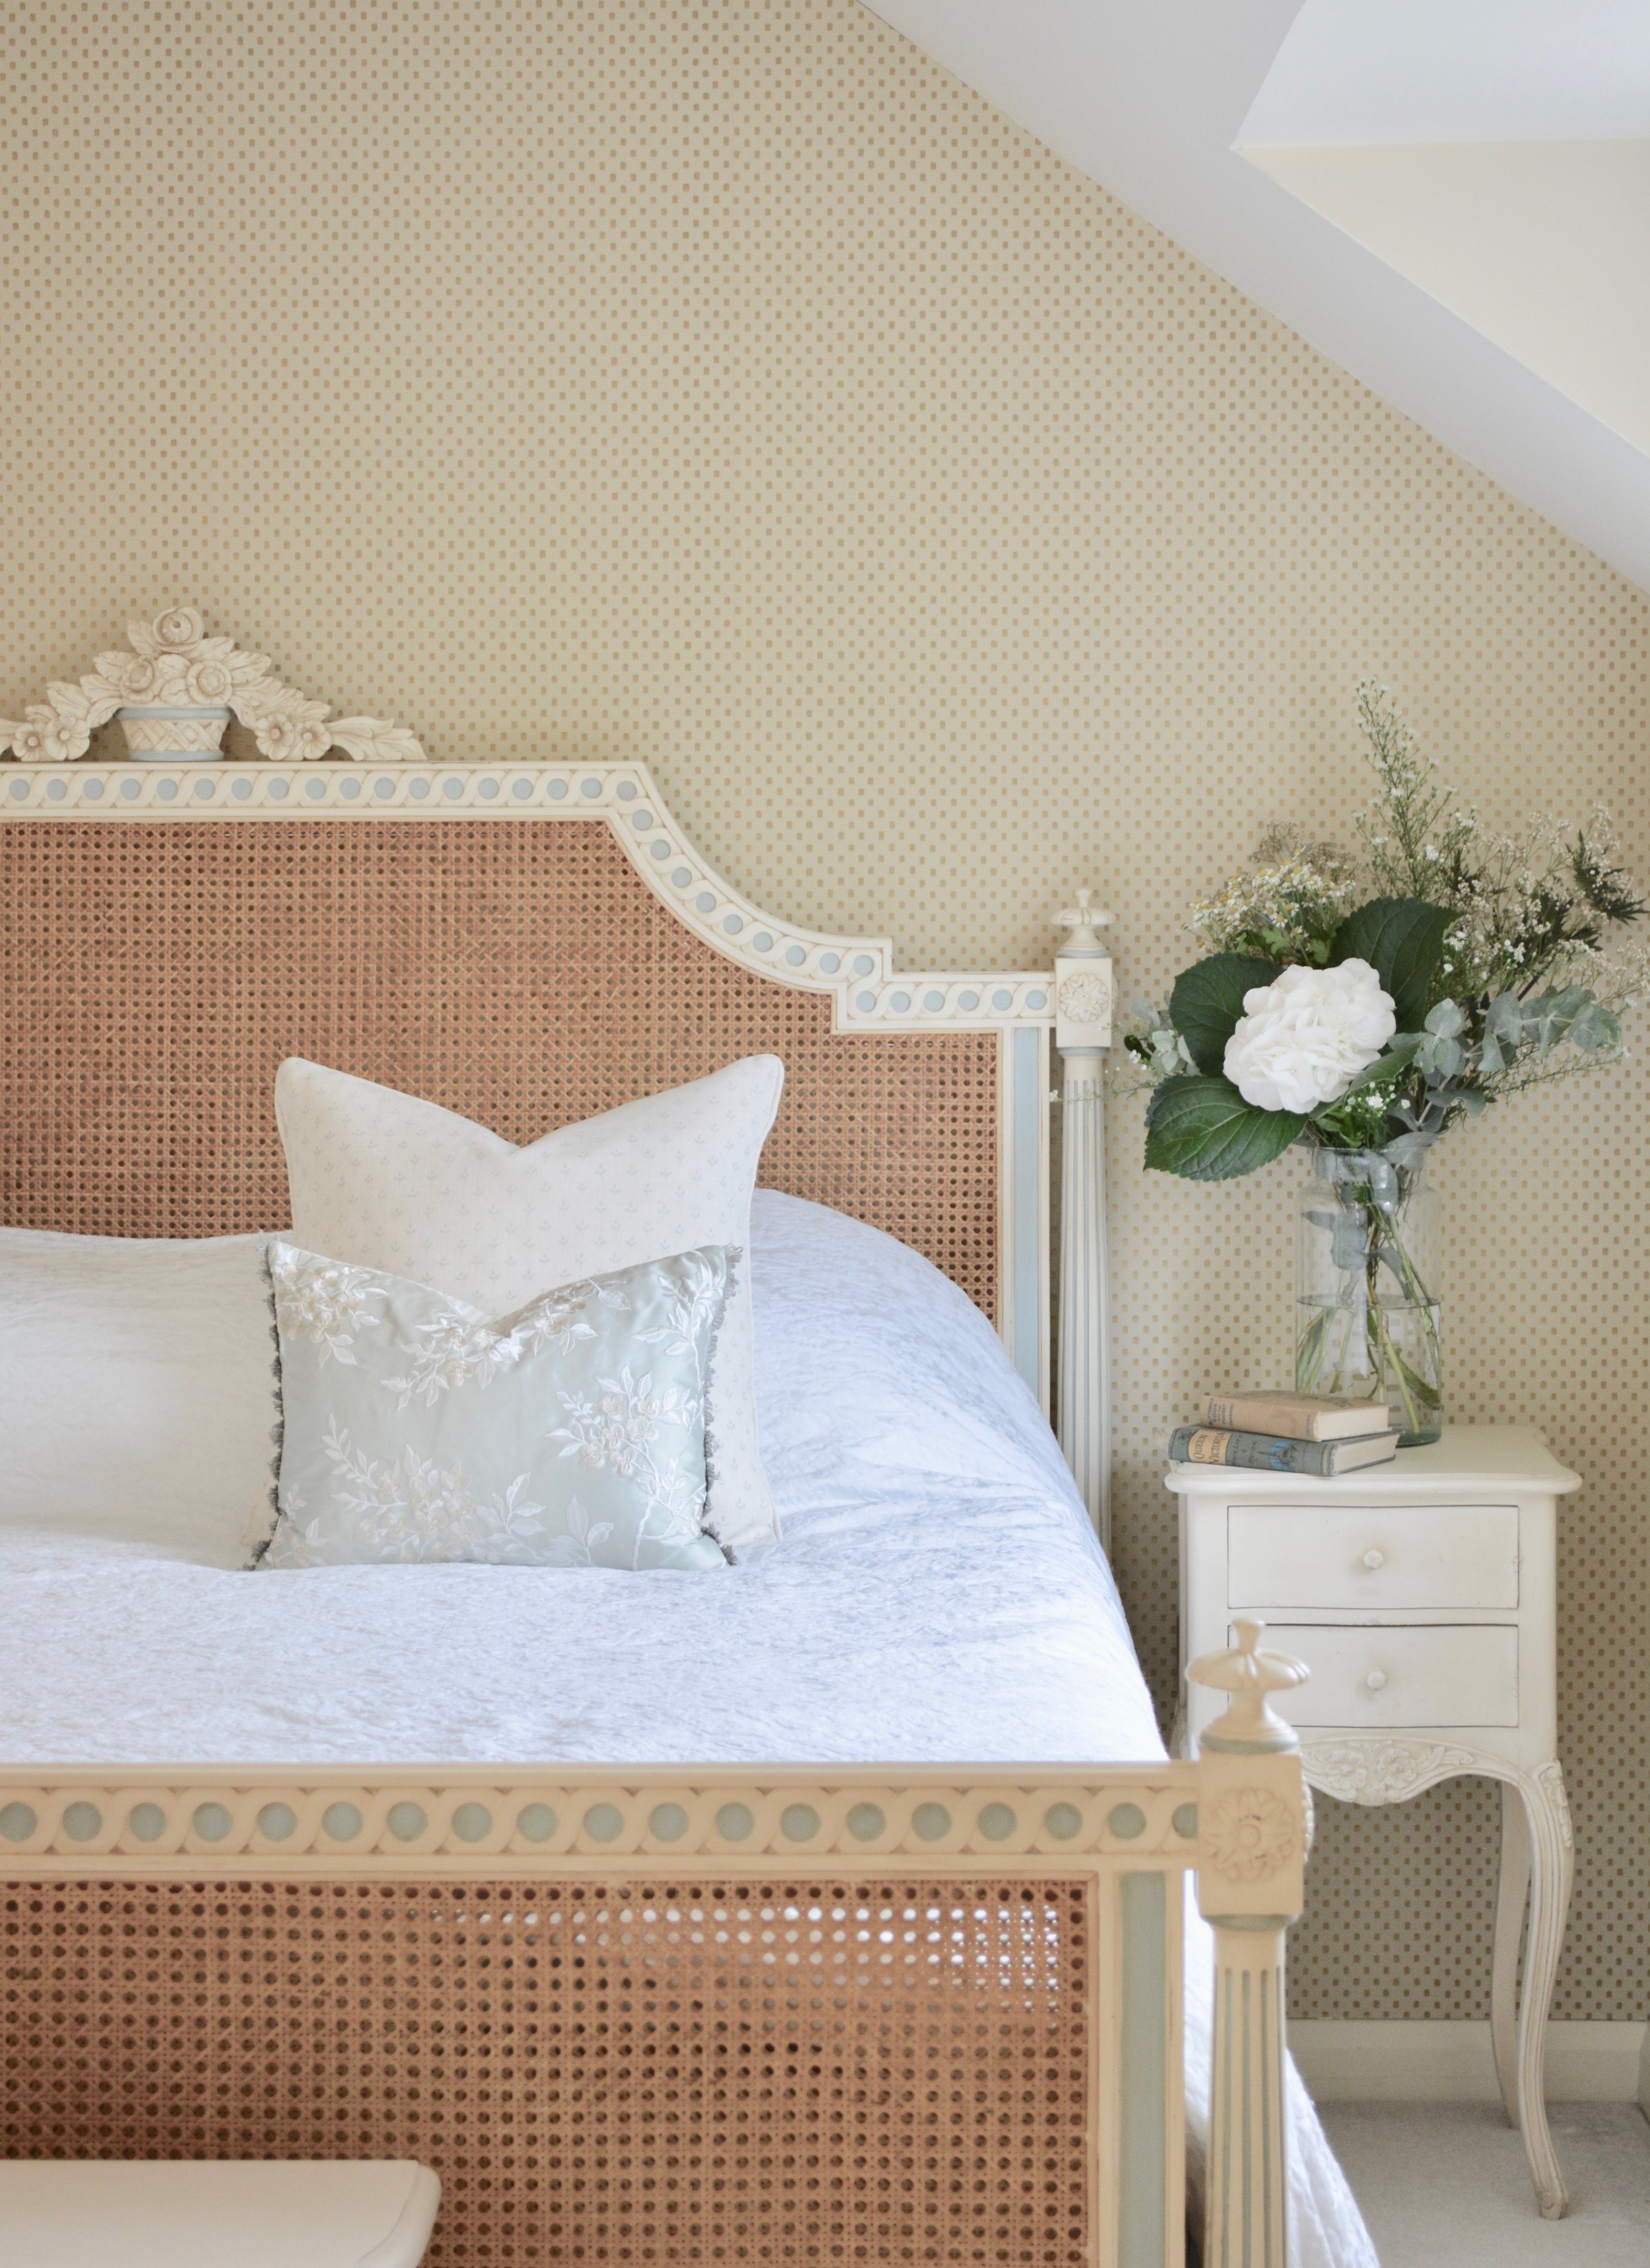 Herefordshire Country Bedroom - See more